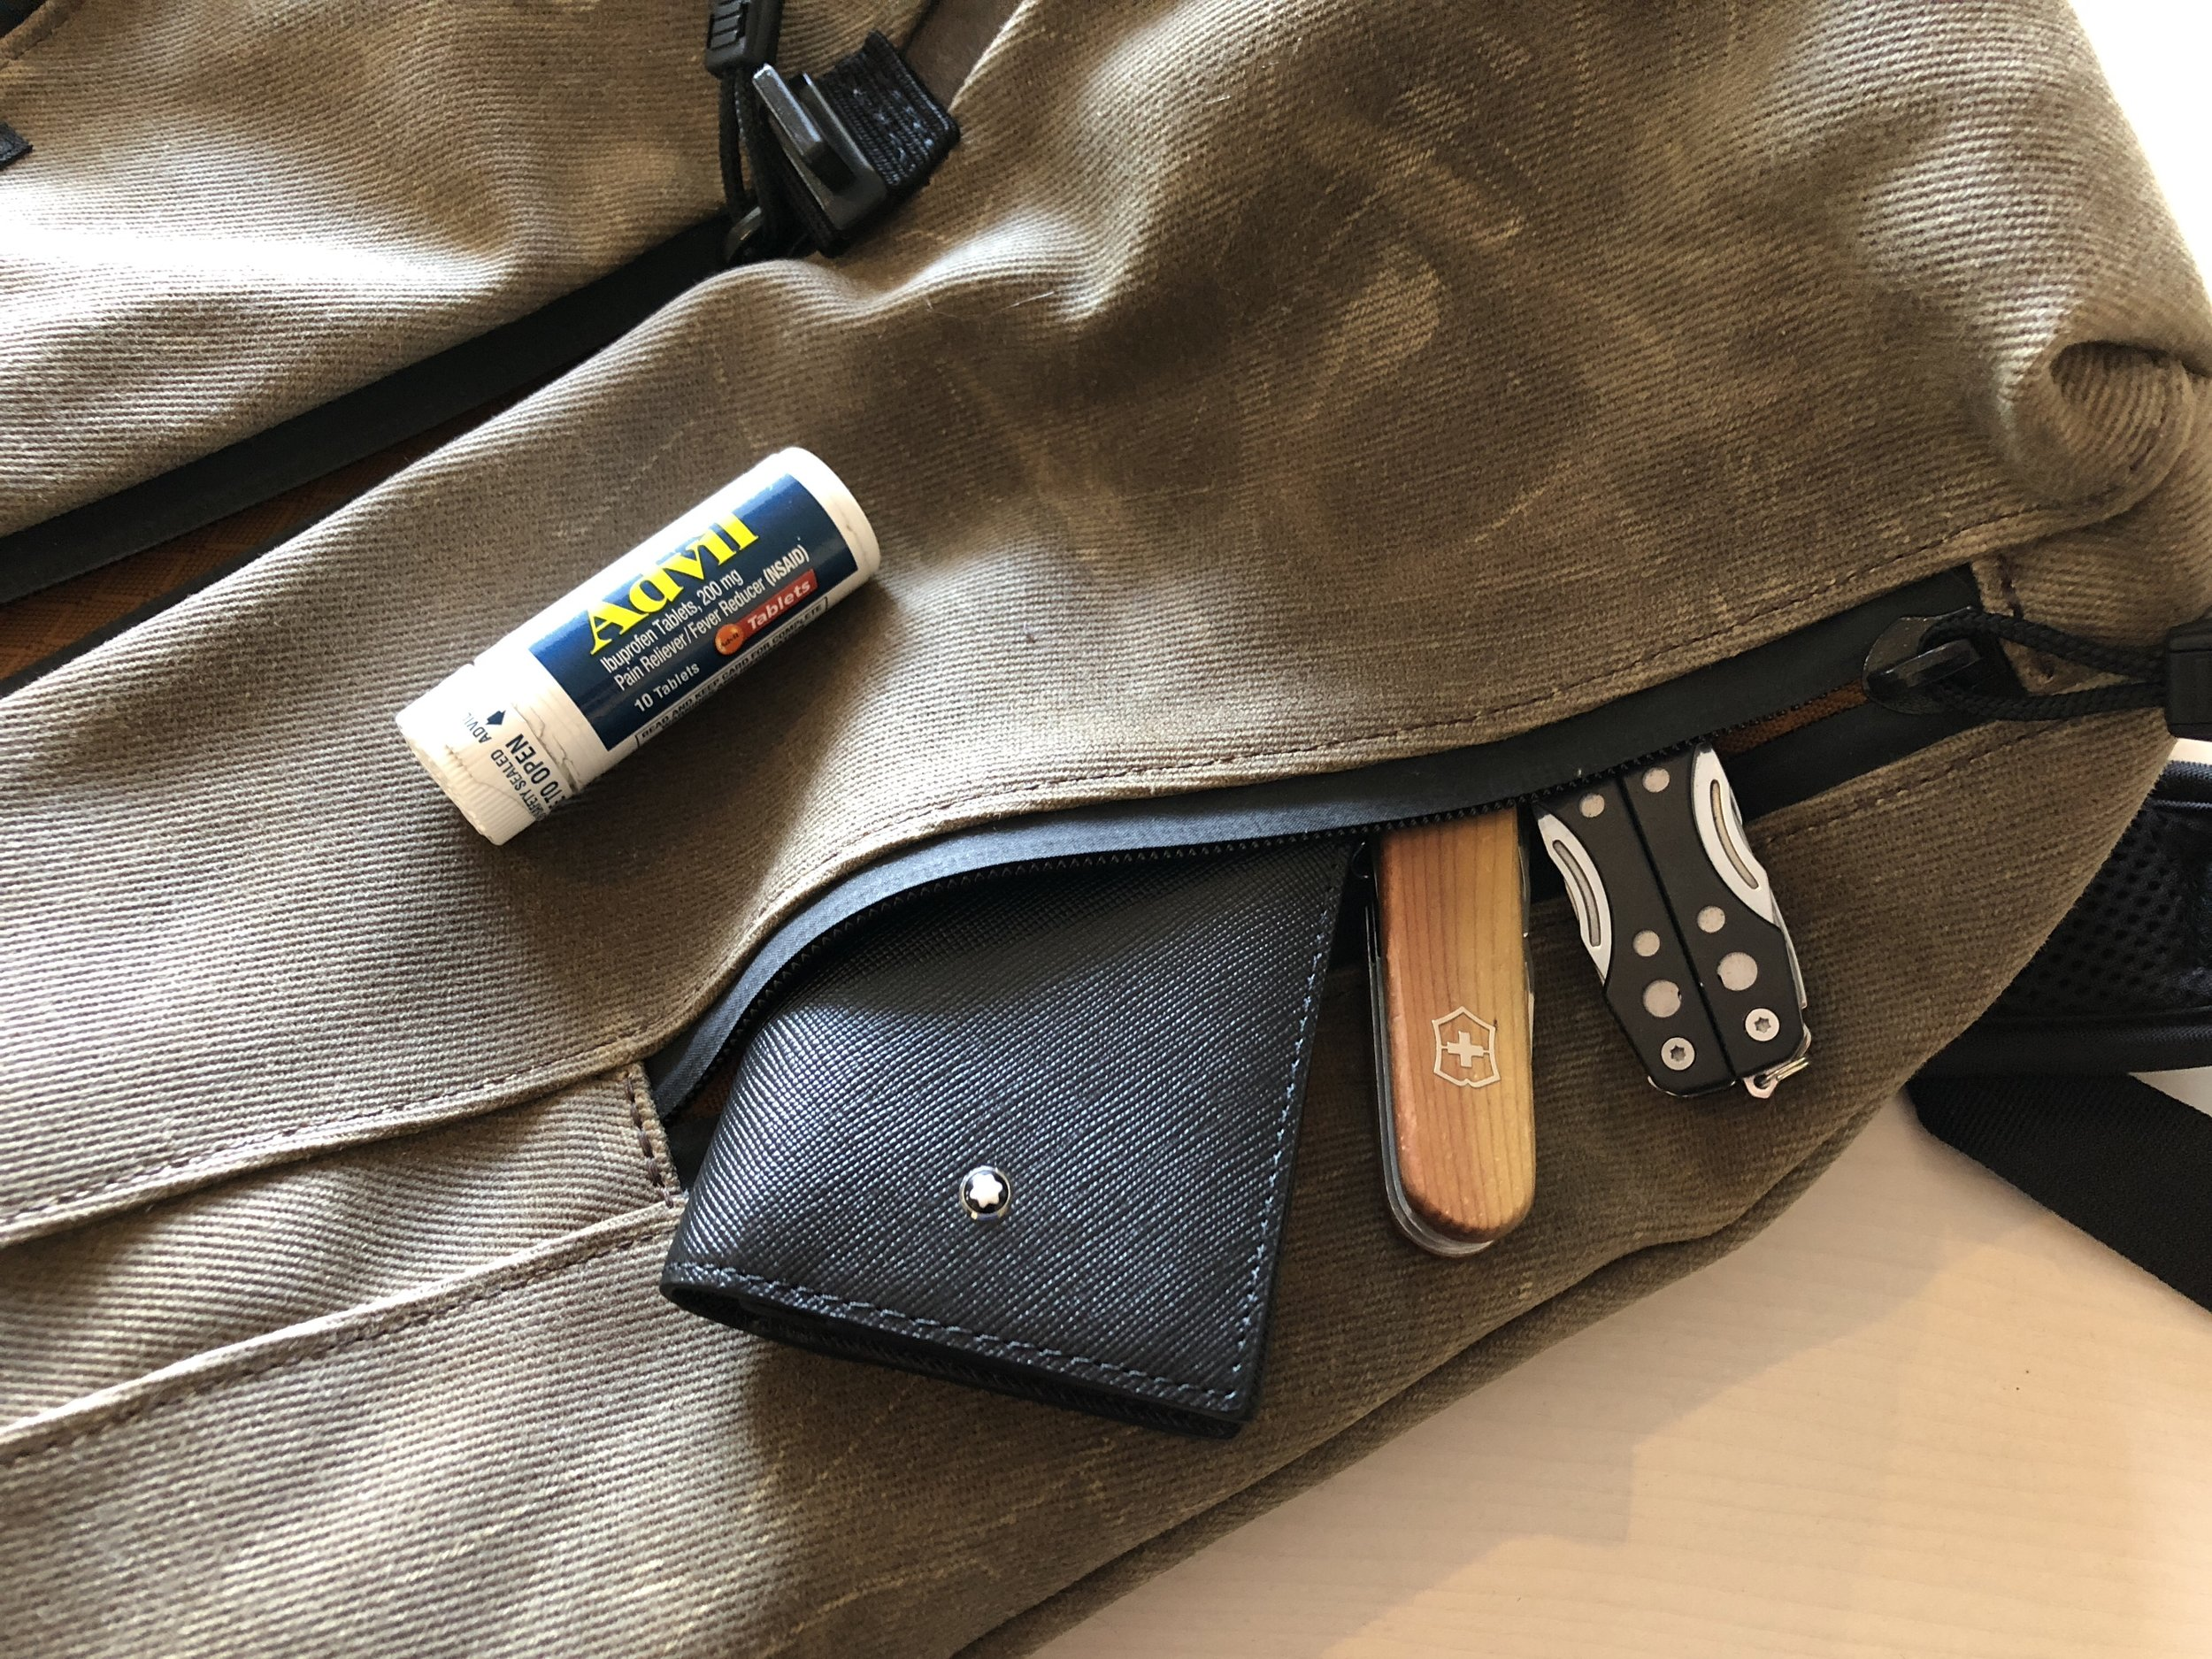 Outside pockets hold business cards, tools, a charger and Advil.